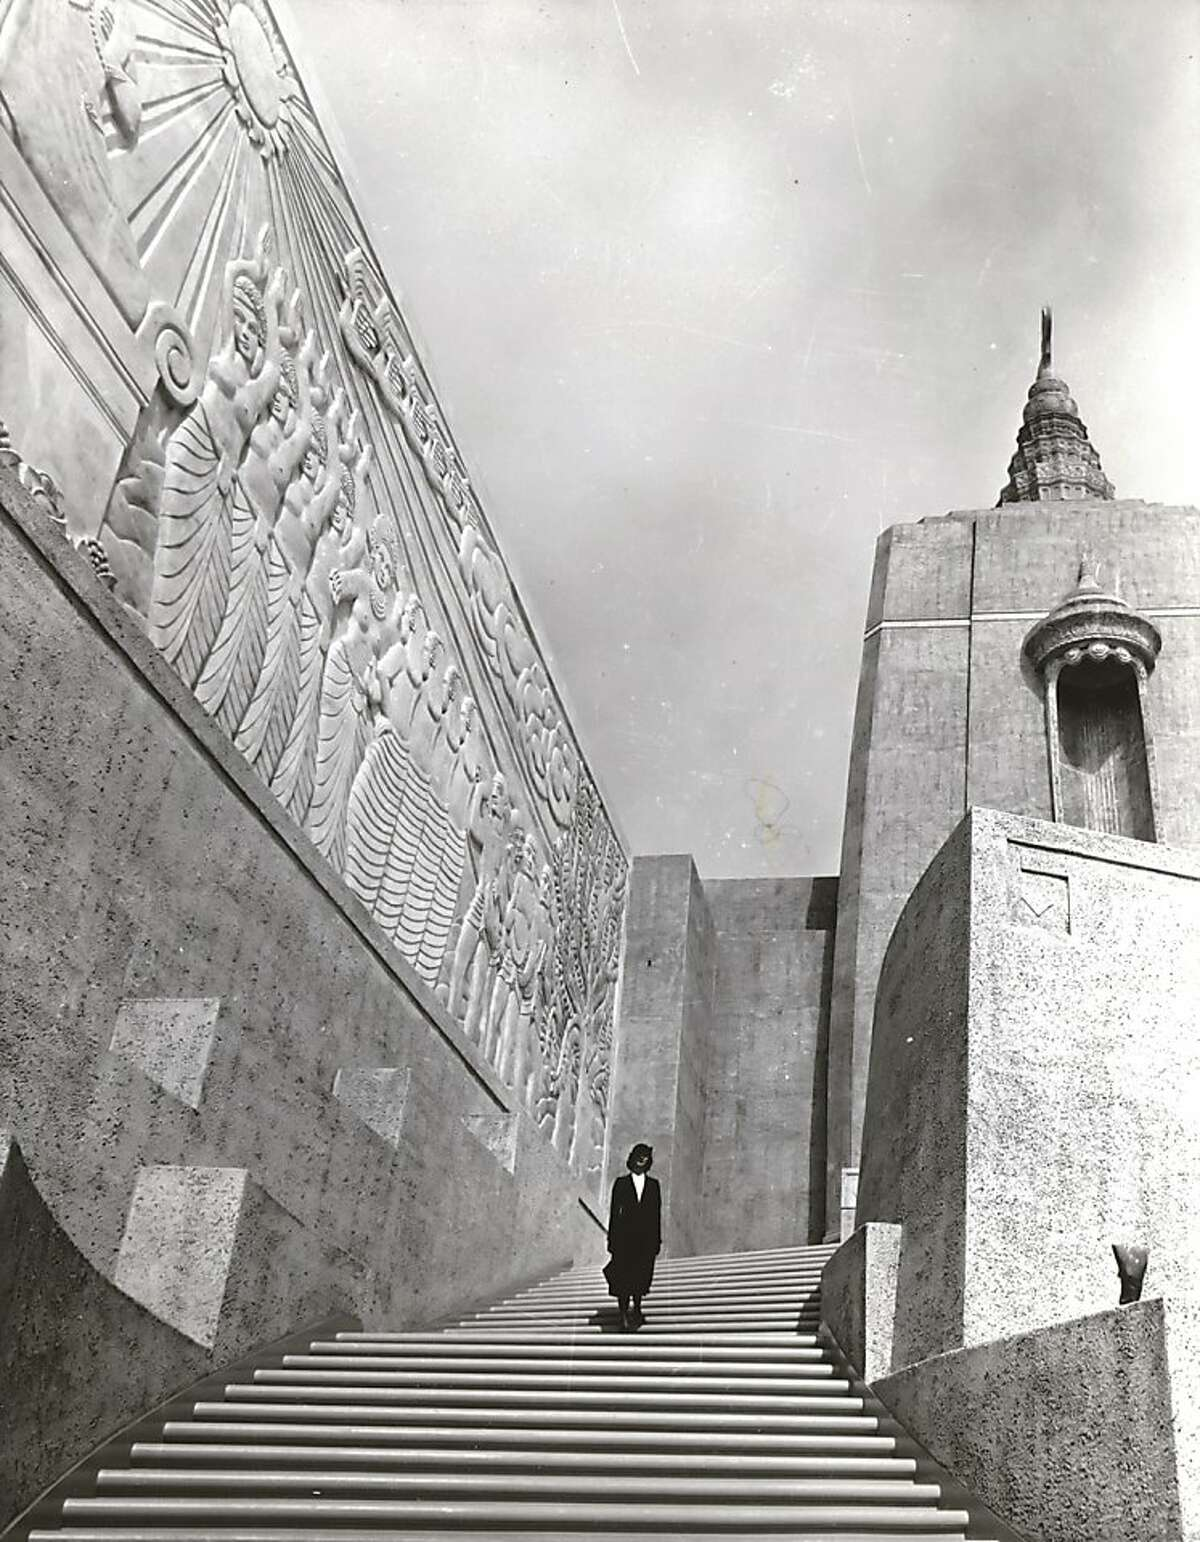 Date unknown - This beautiful stairway leads to one of the East Towers which look out over the main lagoon and the Court of the Nation on Treasure Island, San Francisco Bay site of the 1939 Golden Gate International Exposition. On the wall is Jacques Schnier's bas relief,